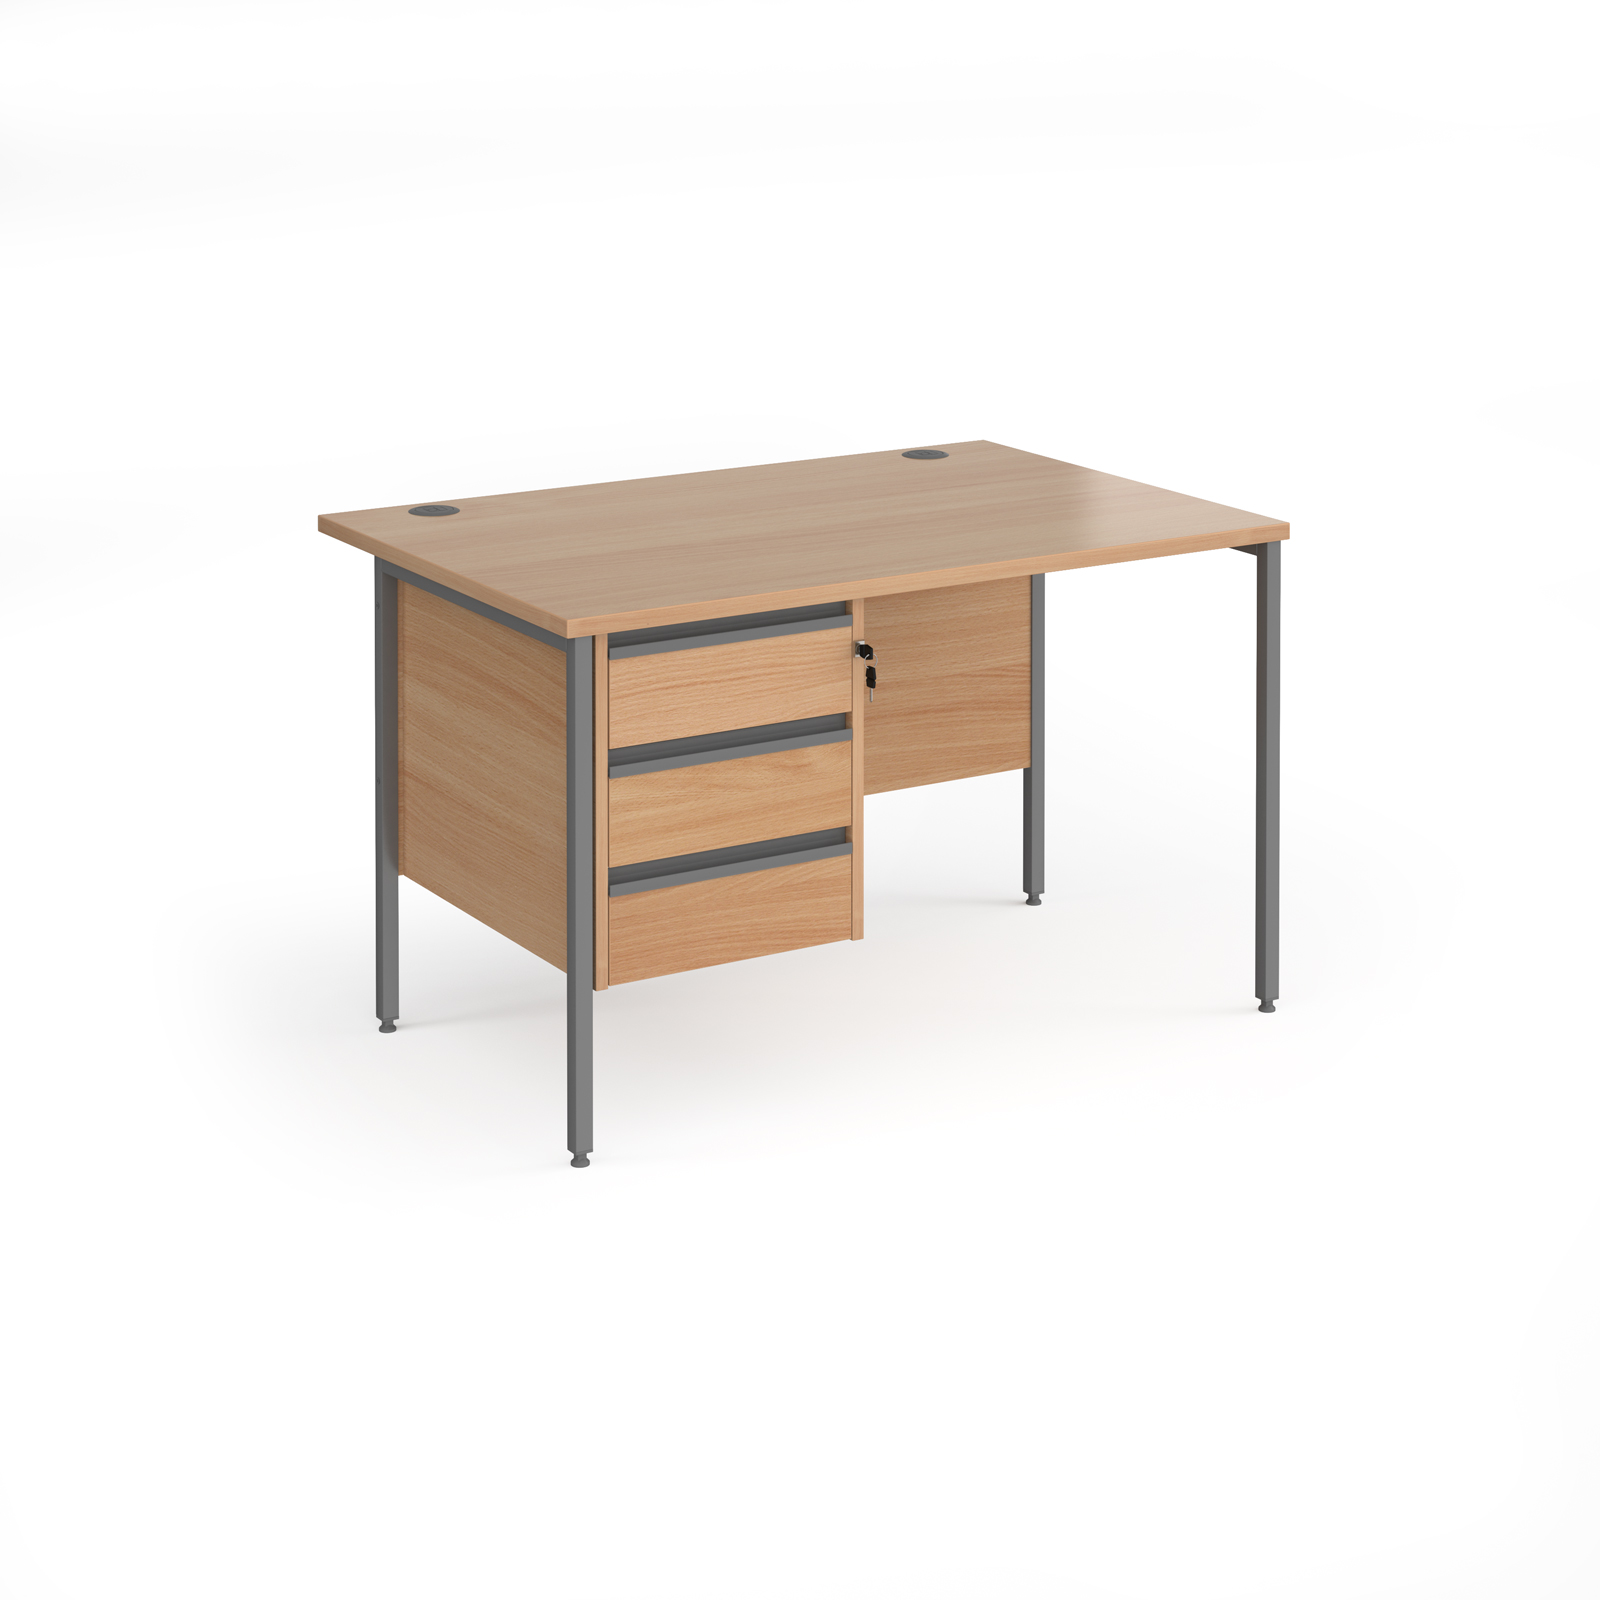 Contract 25 straight desk with 3 drawer pedestal and graphite H-Frame leg 1200mm x 800mm - beech top